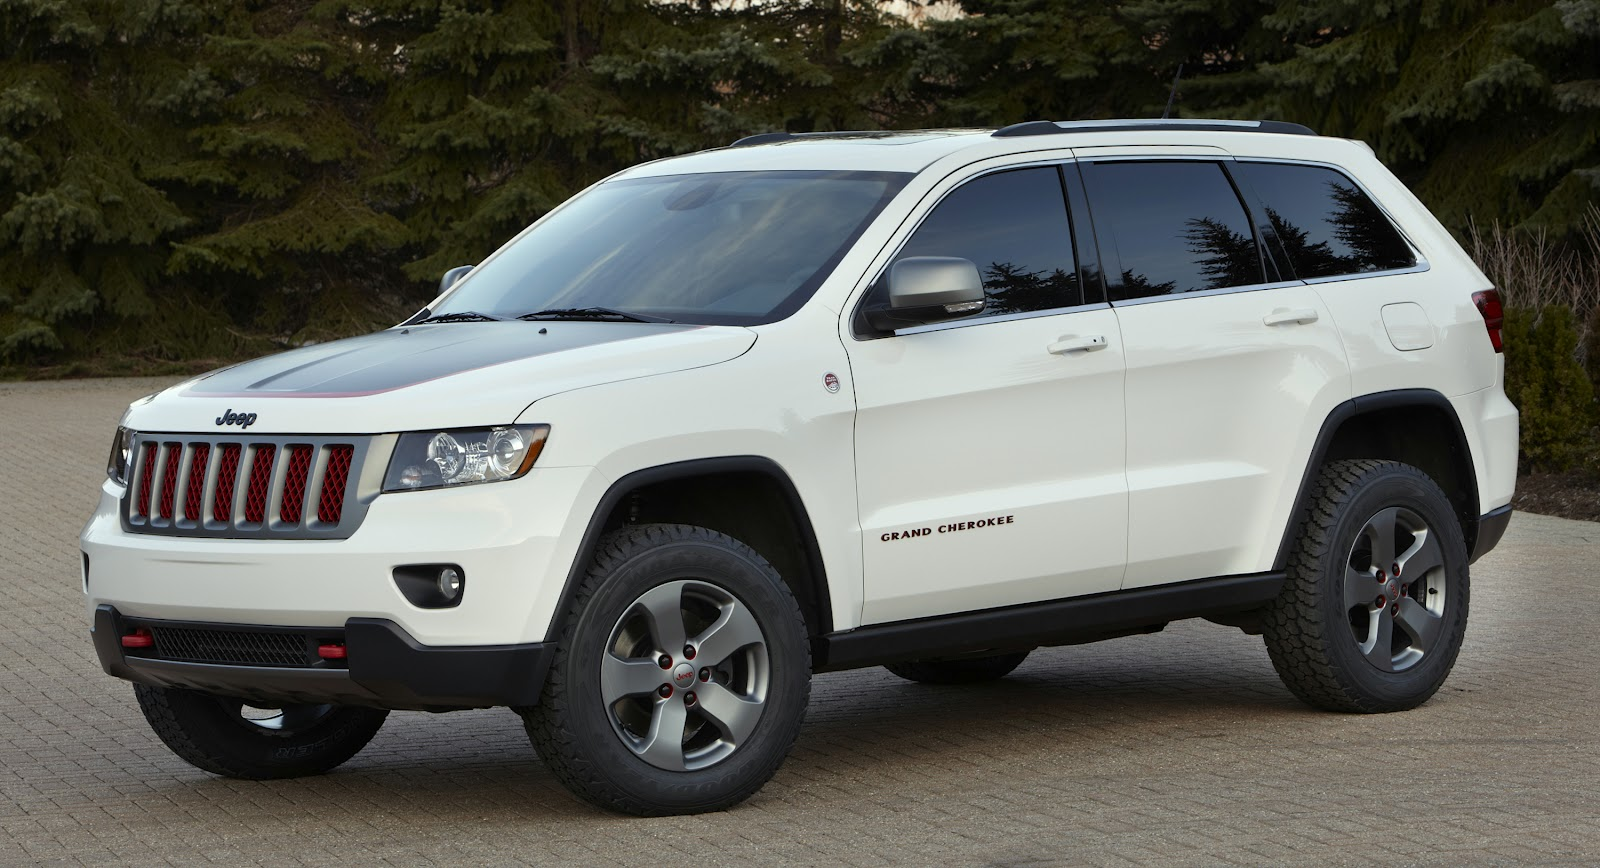 Uautoknownet Jeep Brings 6 New Concepts To 2012 Moab